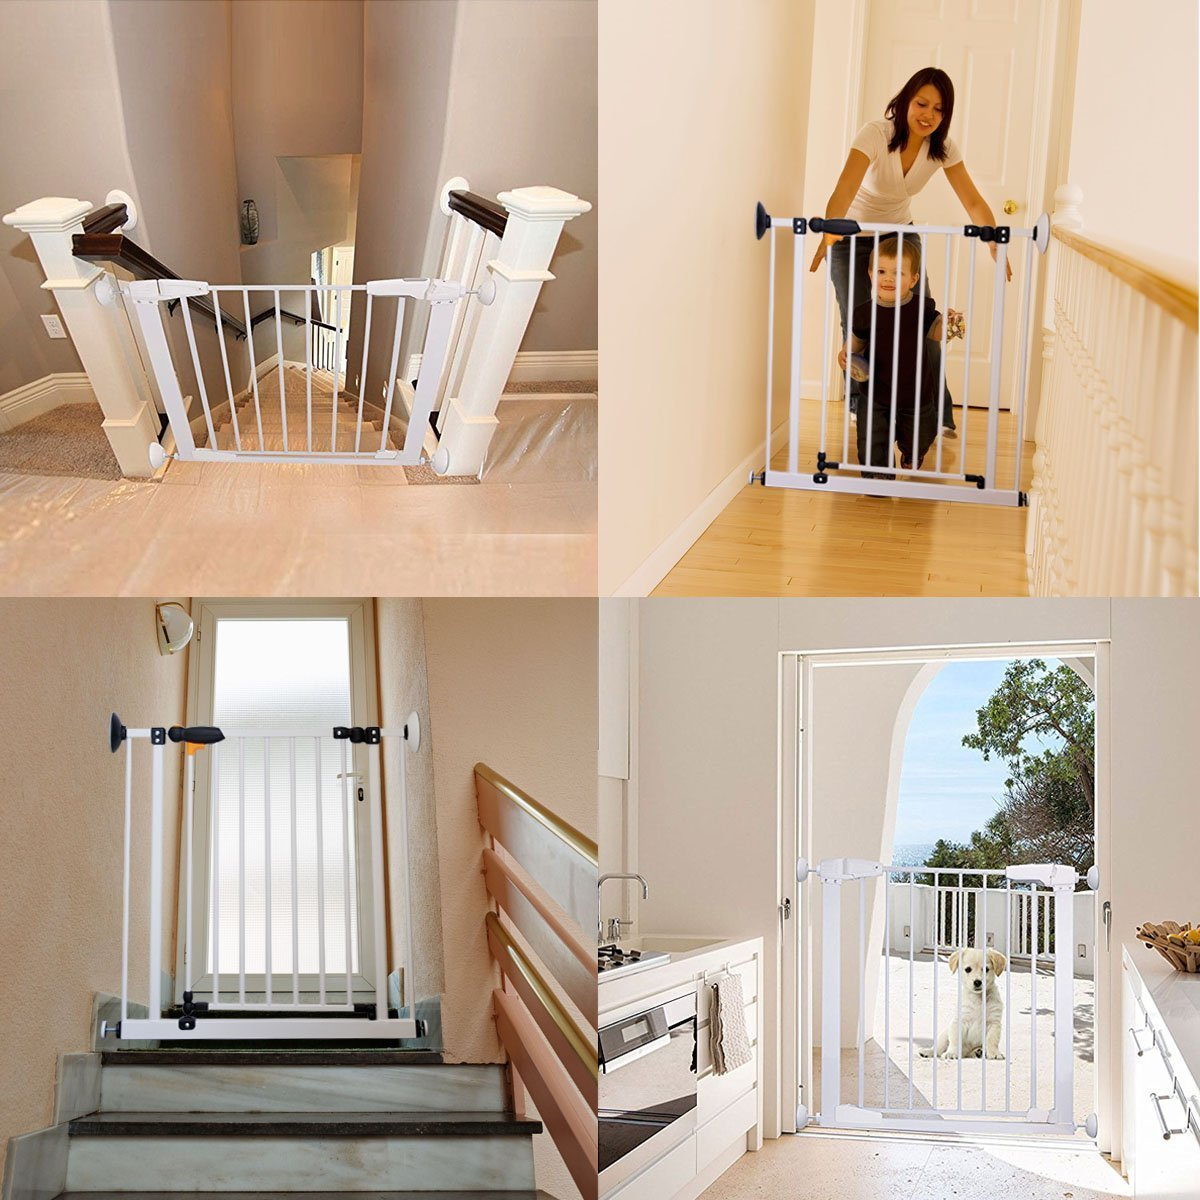 Fairy Baby Baby Gate Wall Saver Pressure Wall Guard Protector 2 Pack White